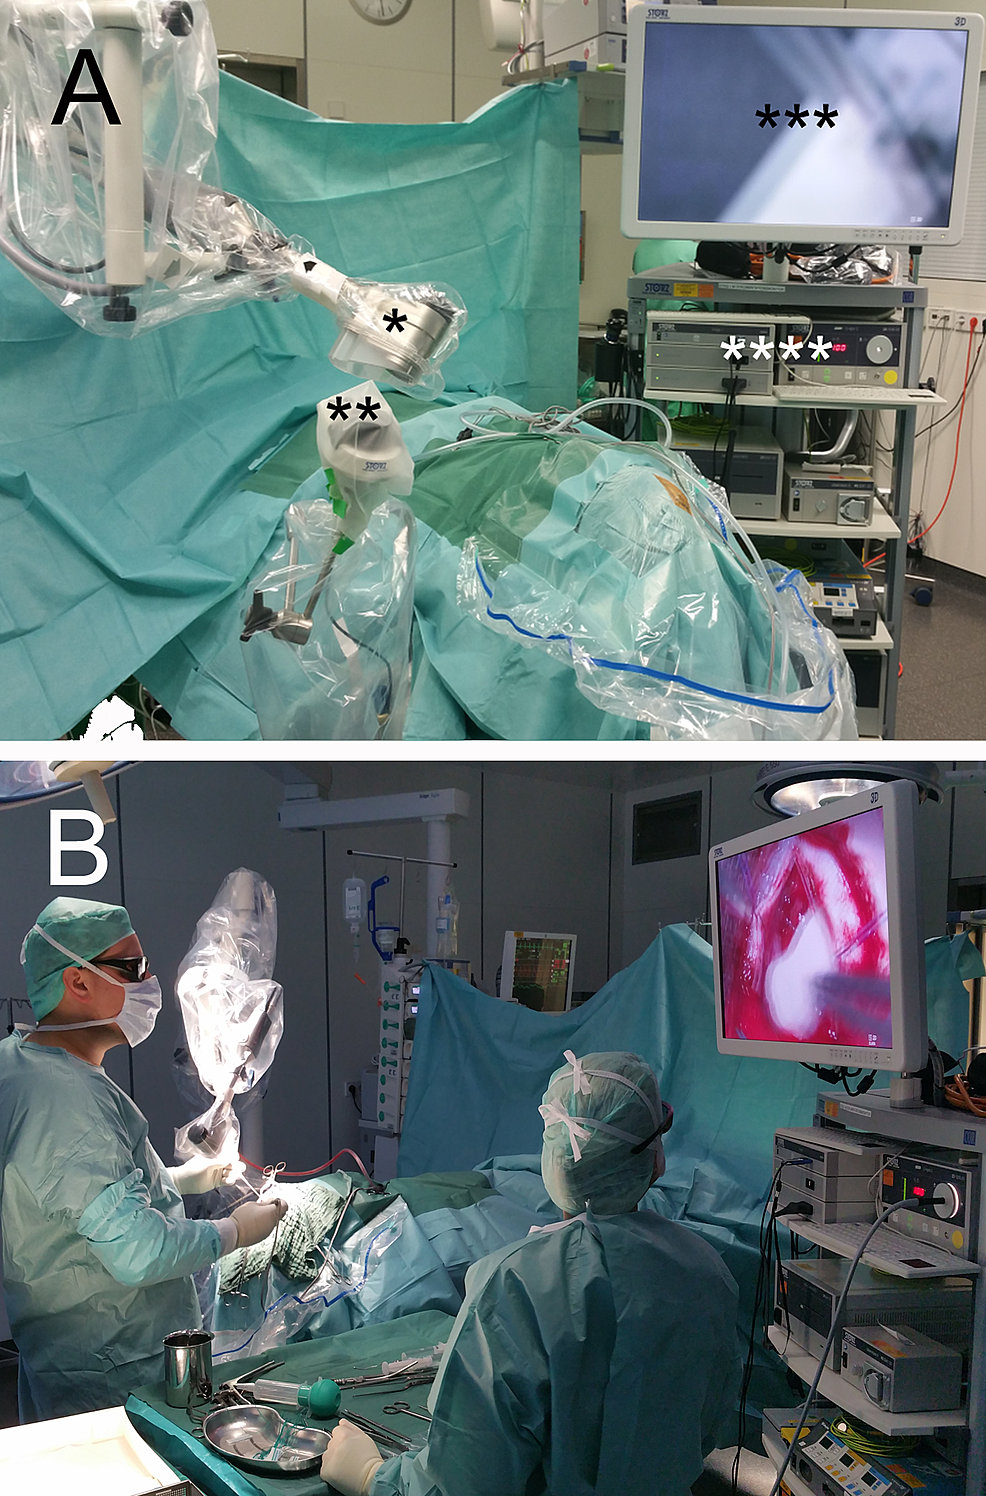 Operating-room-set-up-and-exoscope-during-surgery